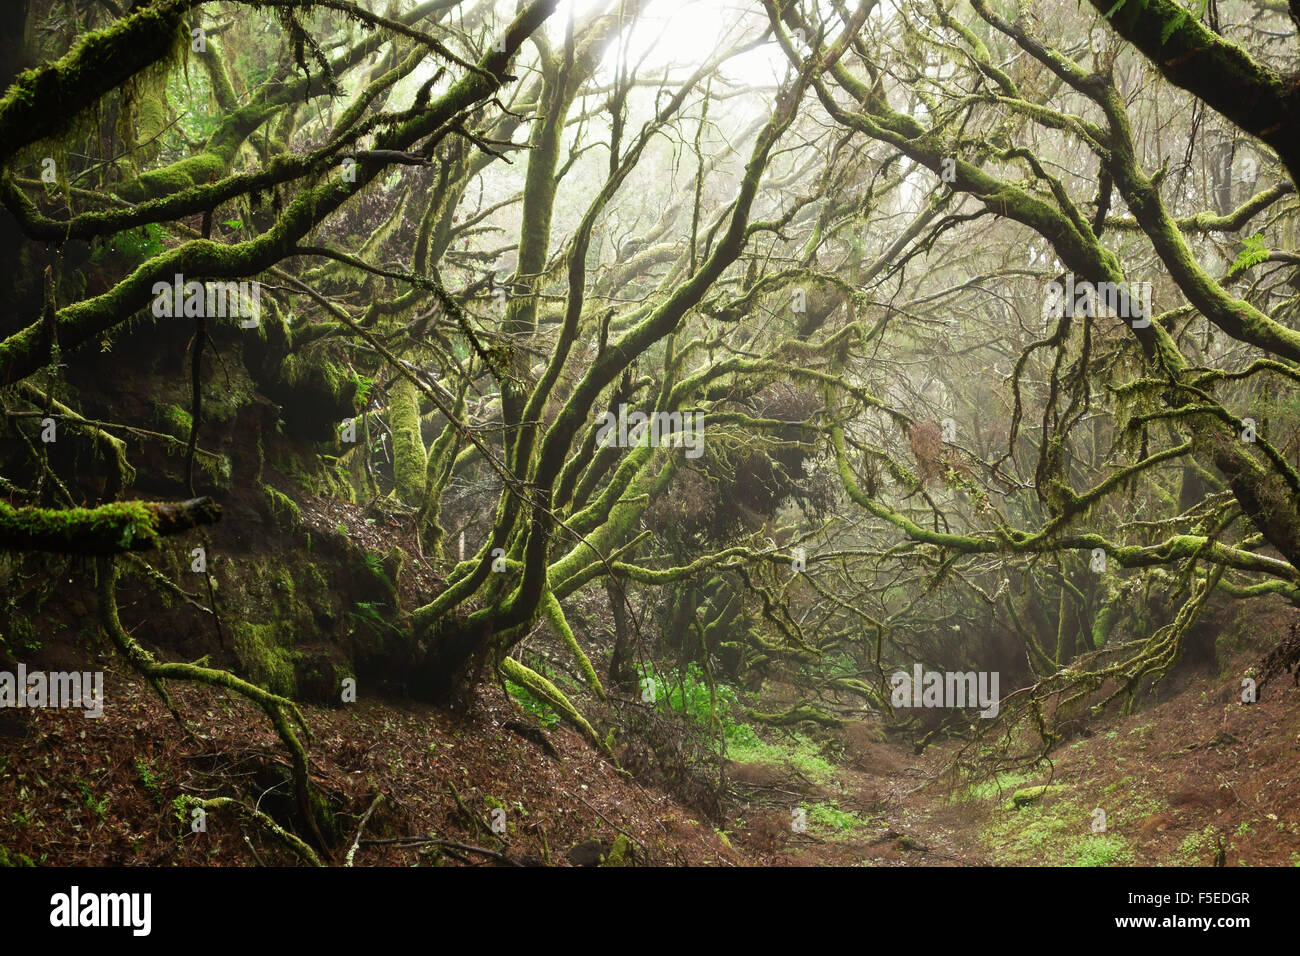 Laurel forest in fog, El Hierro, Canary Islands, Spain, Europe - Stock Image